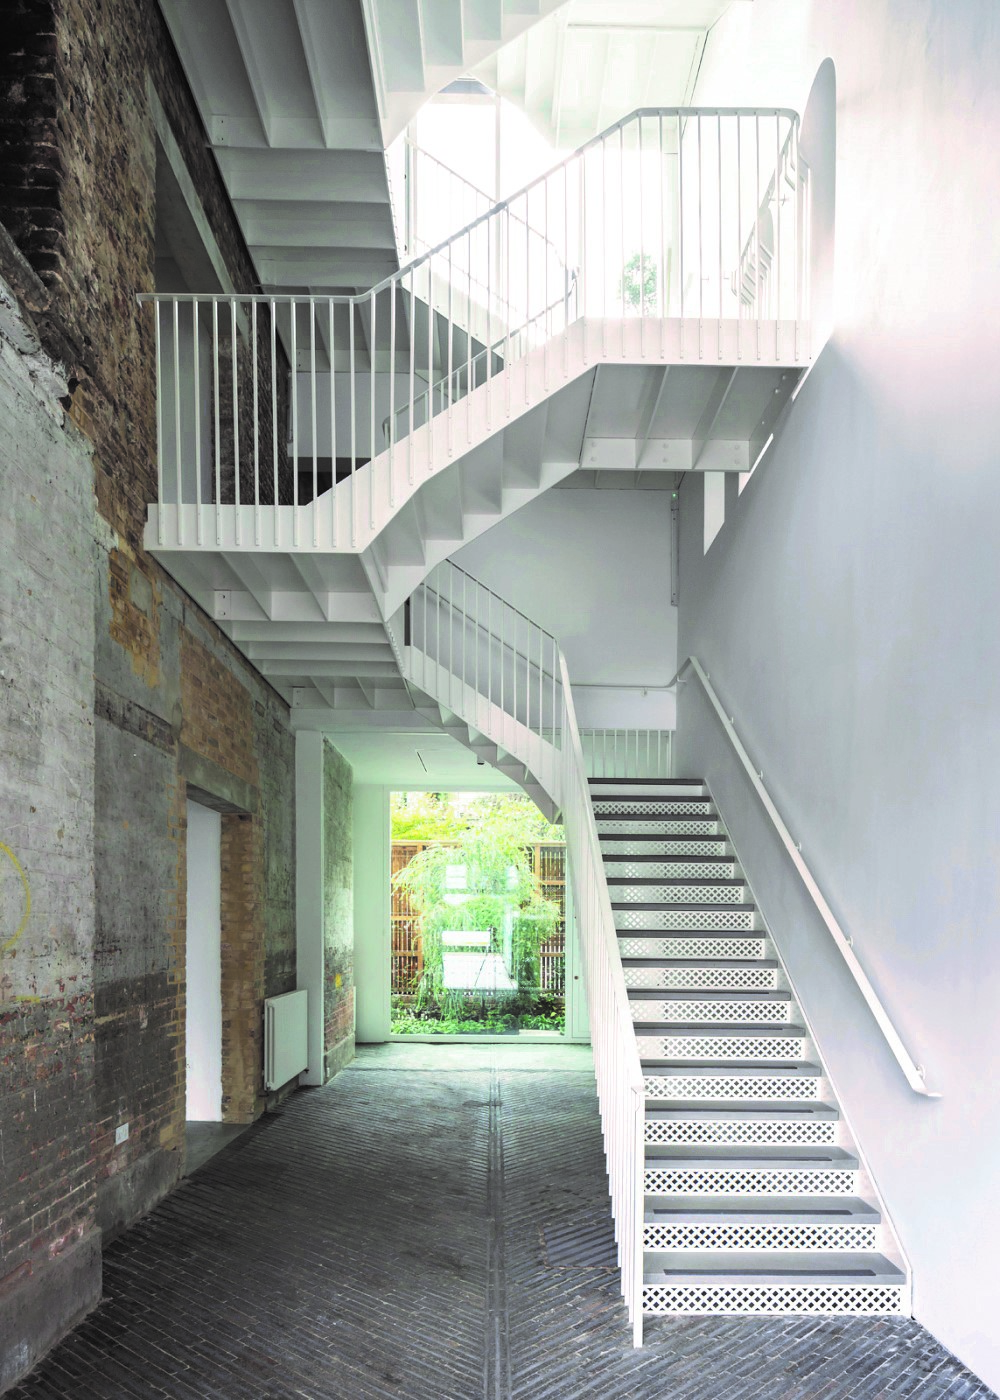 The inside of a converted fire station showing a modern stairwell against an old brick wall.